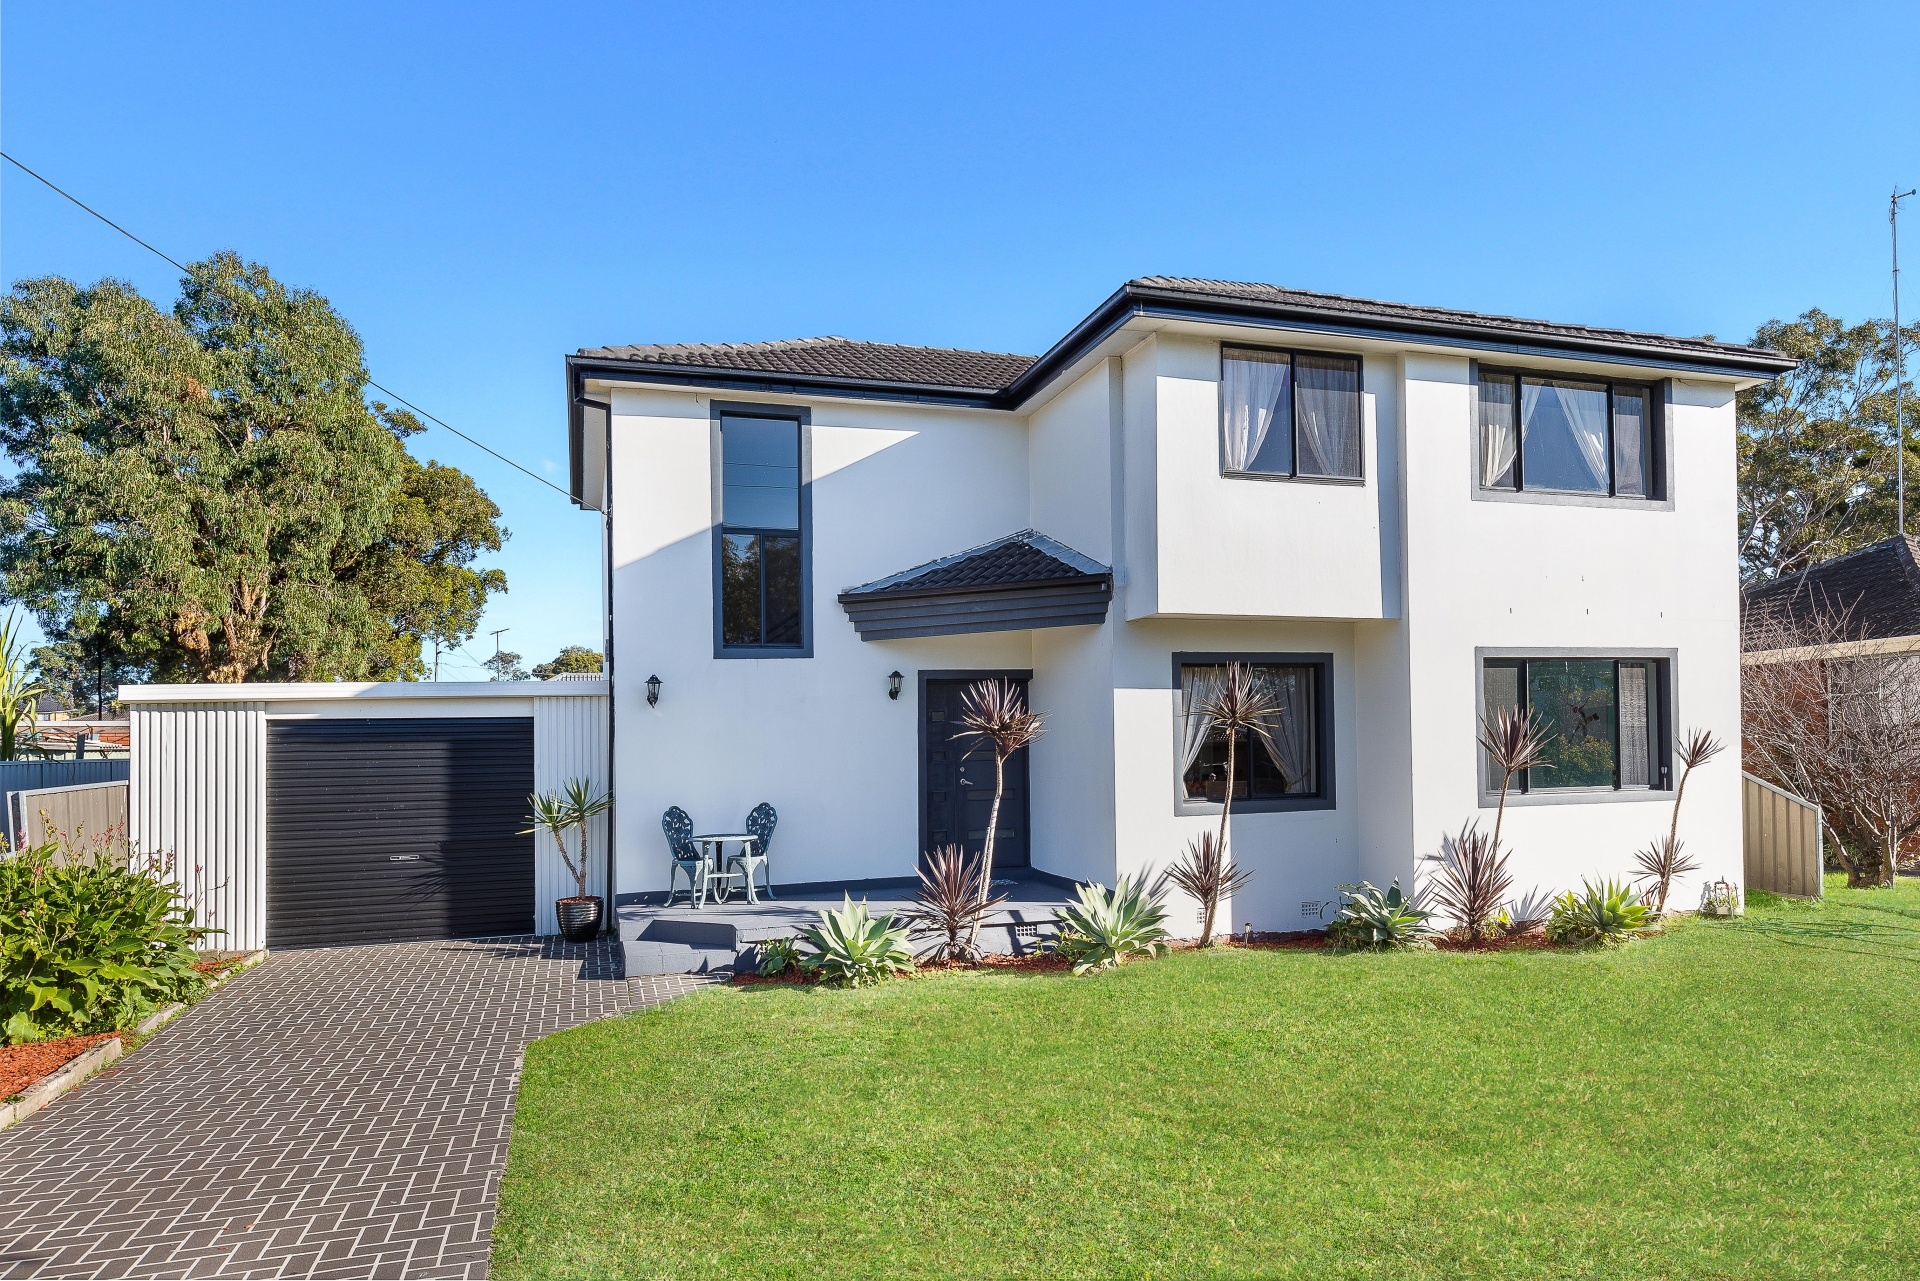 5 Bedroom Family Home!